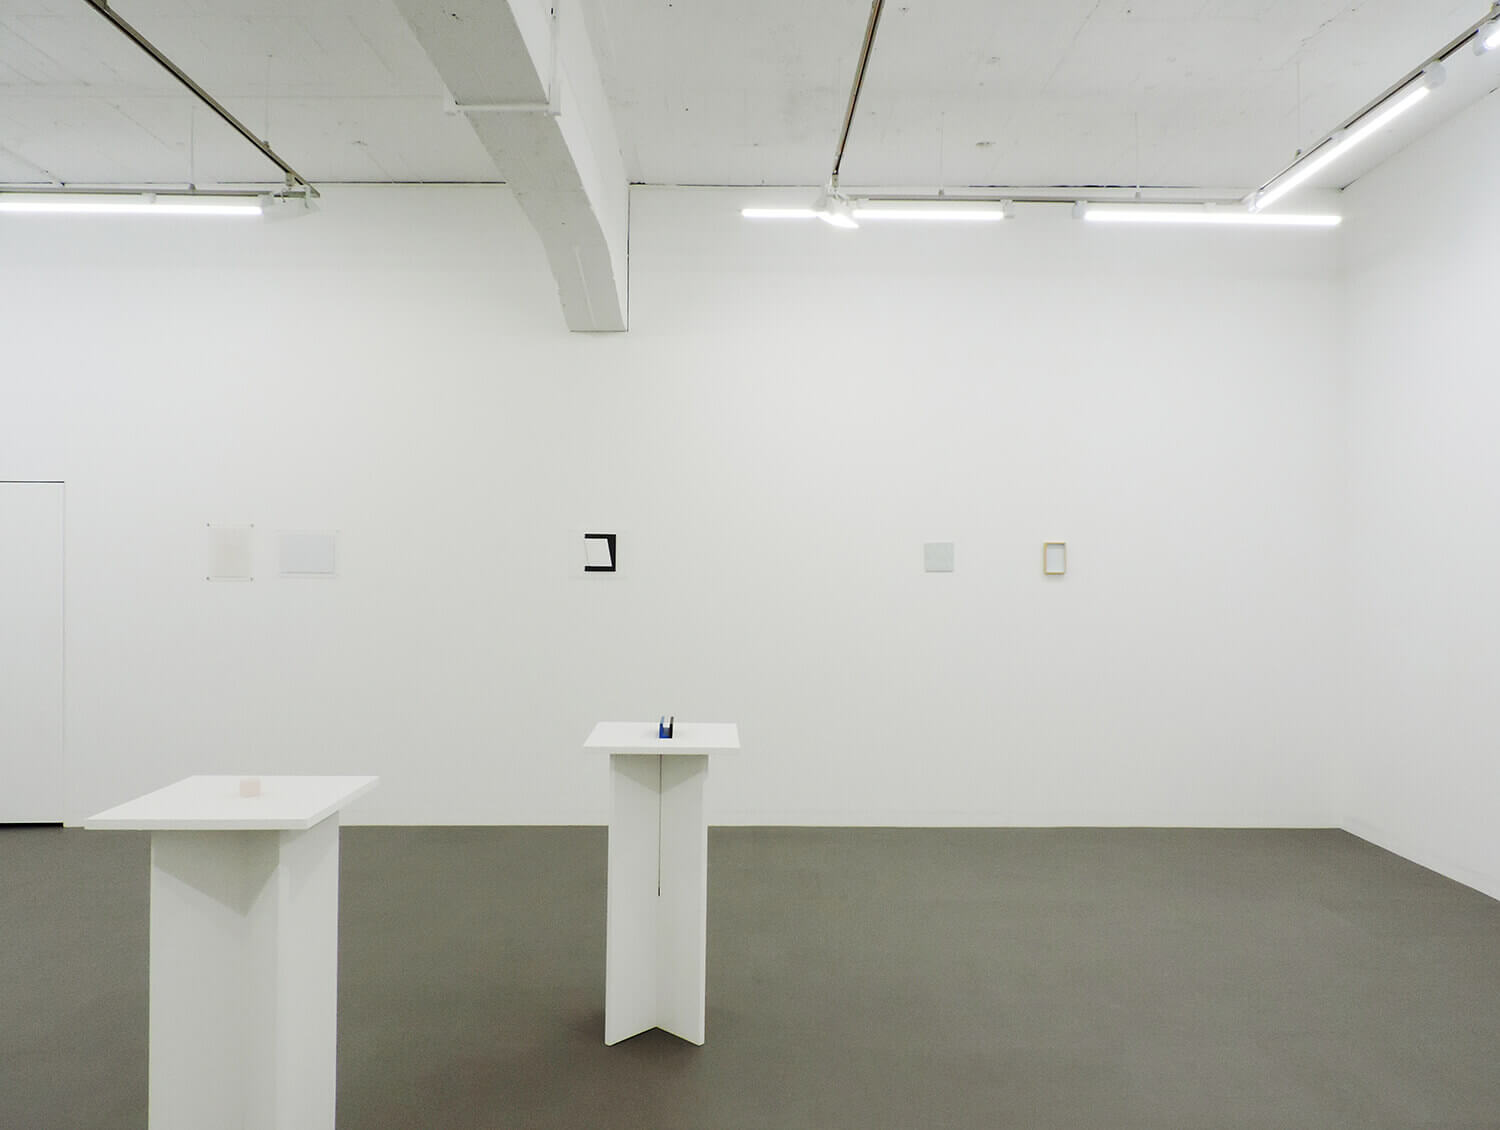 Installation View 6